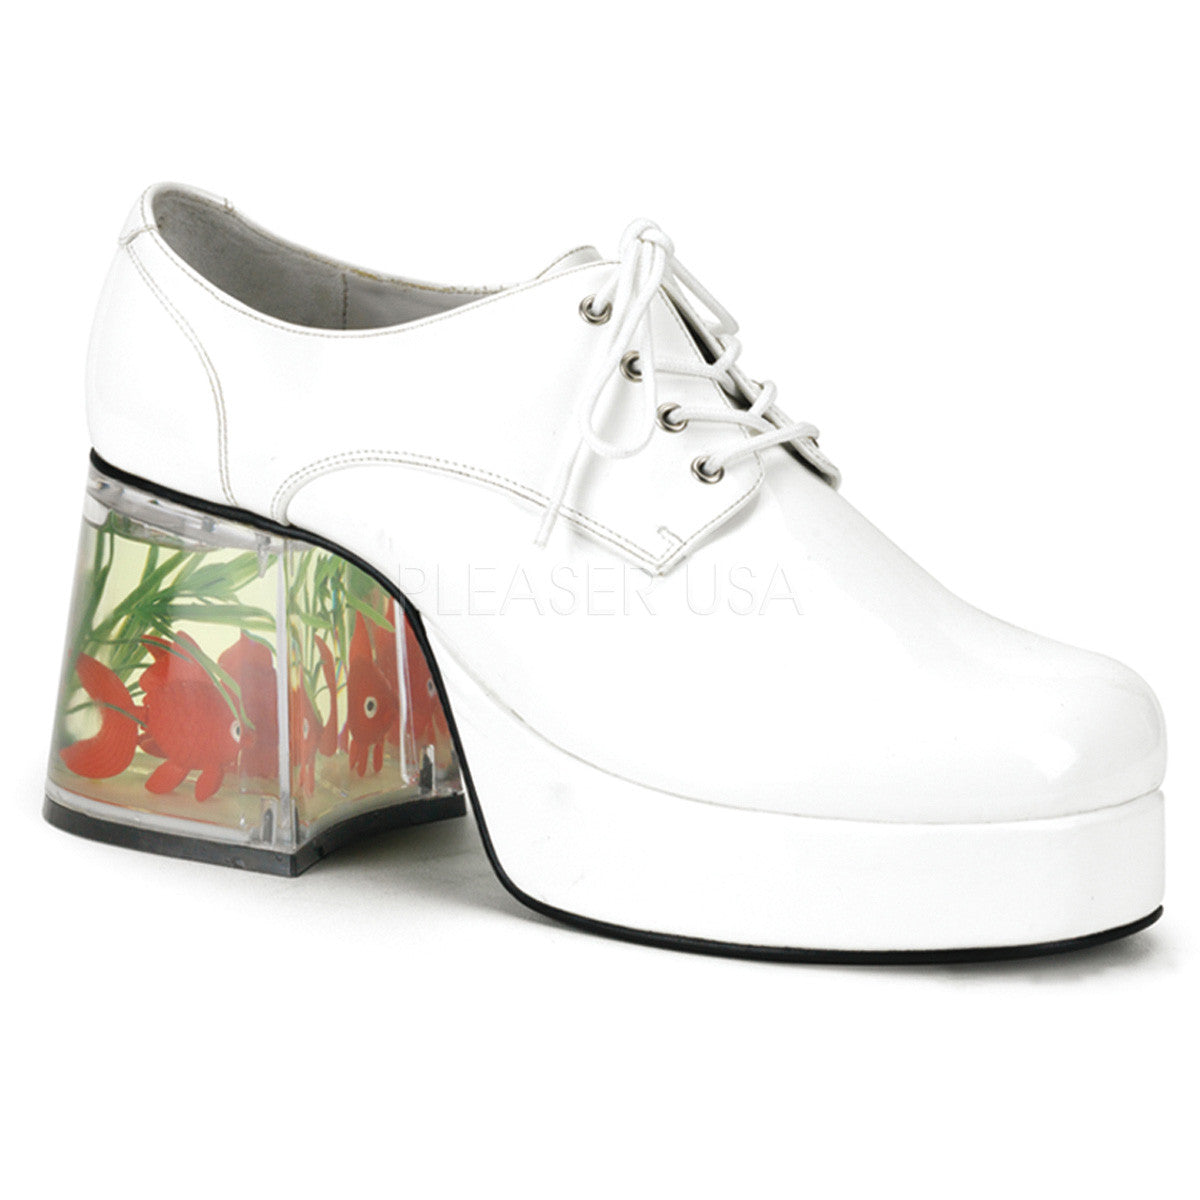 Men's White  Fish Tank Platform Shoes With Fish - Shoecup.com